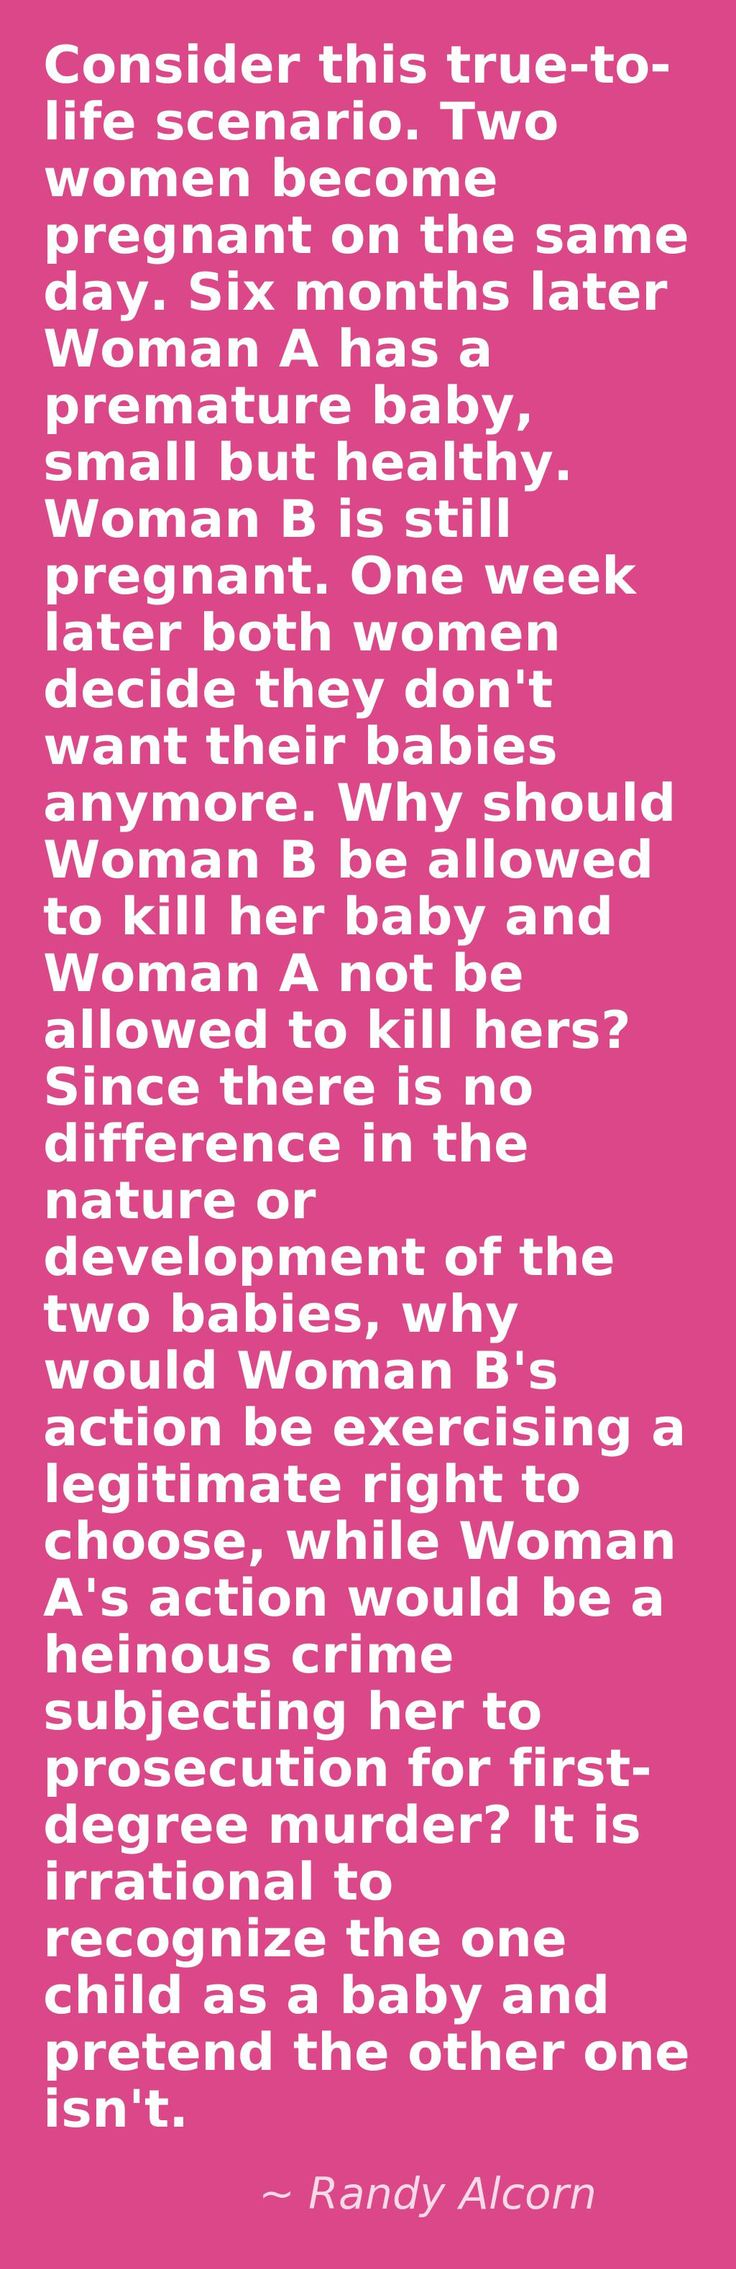 and this is why bodily autonomy does not give you abortion rights. Because death is death and if it is caused by someone other themselves it is murder. Period. And babies, by the way, are now surviving out of the womb at just 20 weeks.